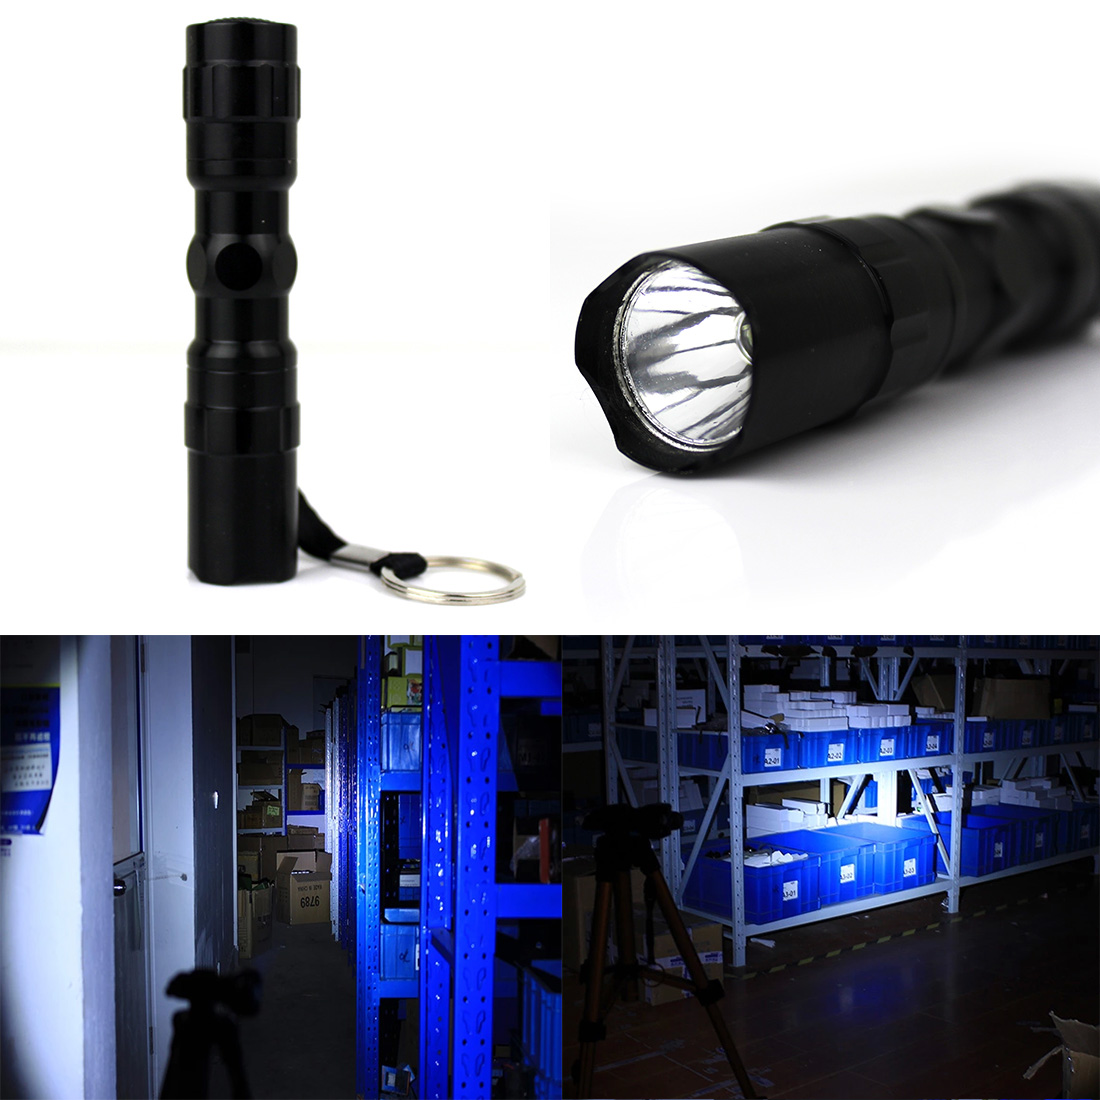 New Hot Waterproof Super Bright Mini Tactical Flashlight Medical LED Bulb Small Torch Light Home Living Outdoor Survival Tools